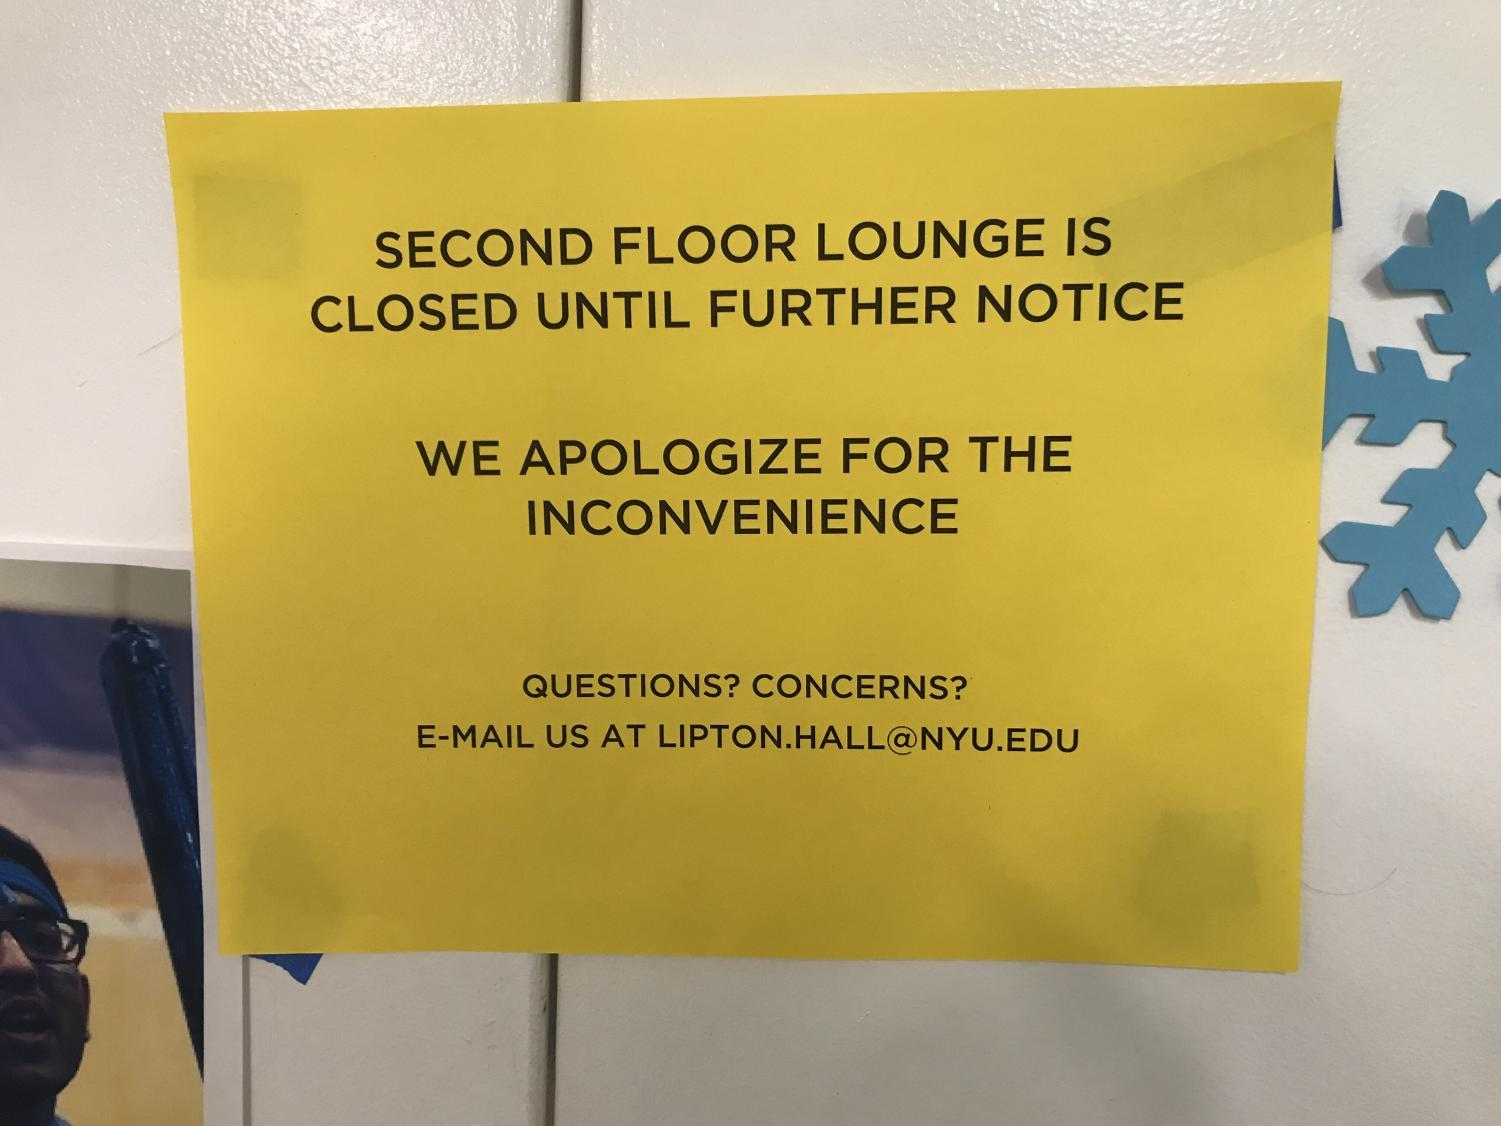 Lipton Hall lounge closed after hate symbols found again.